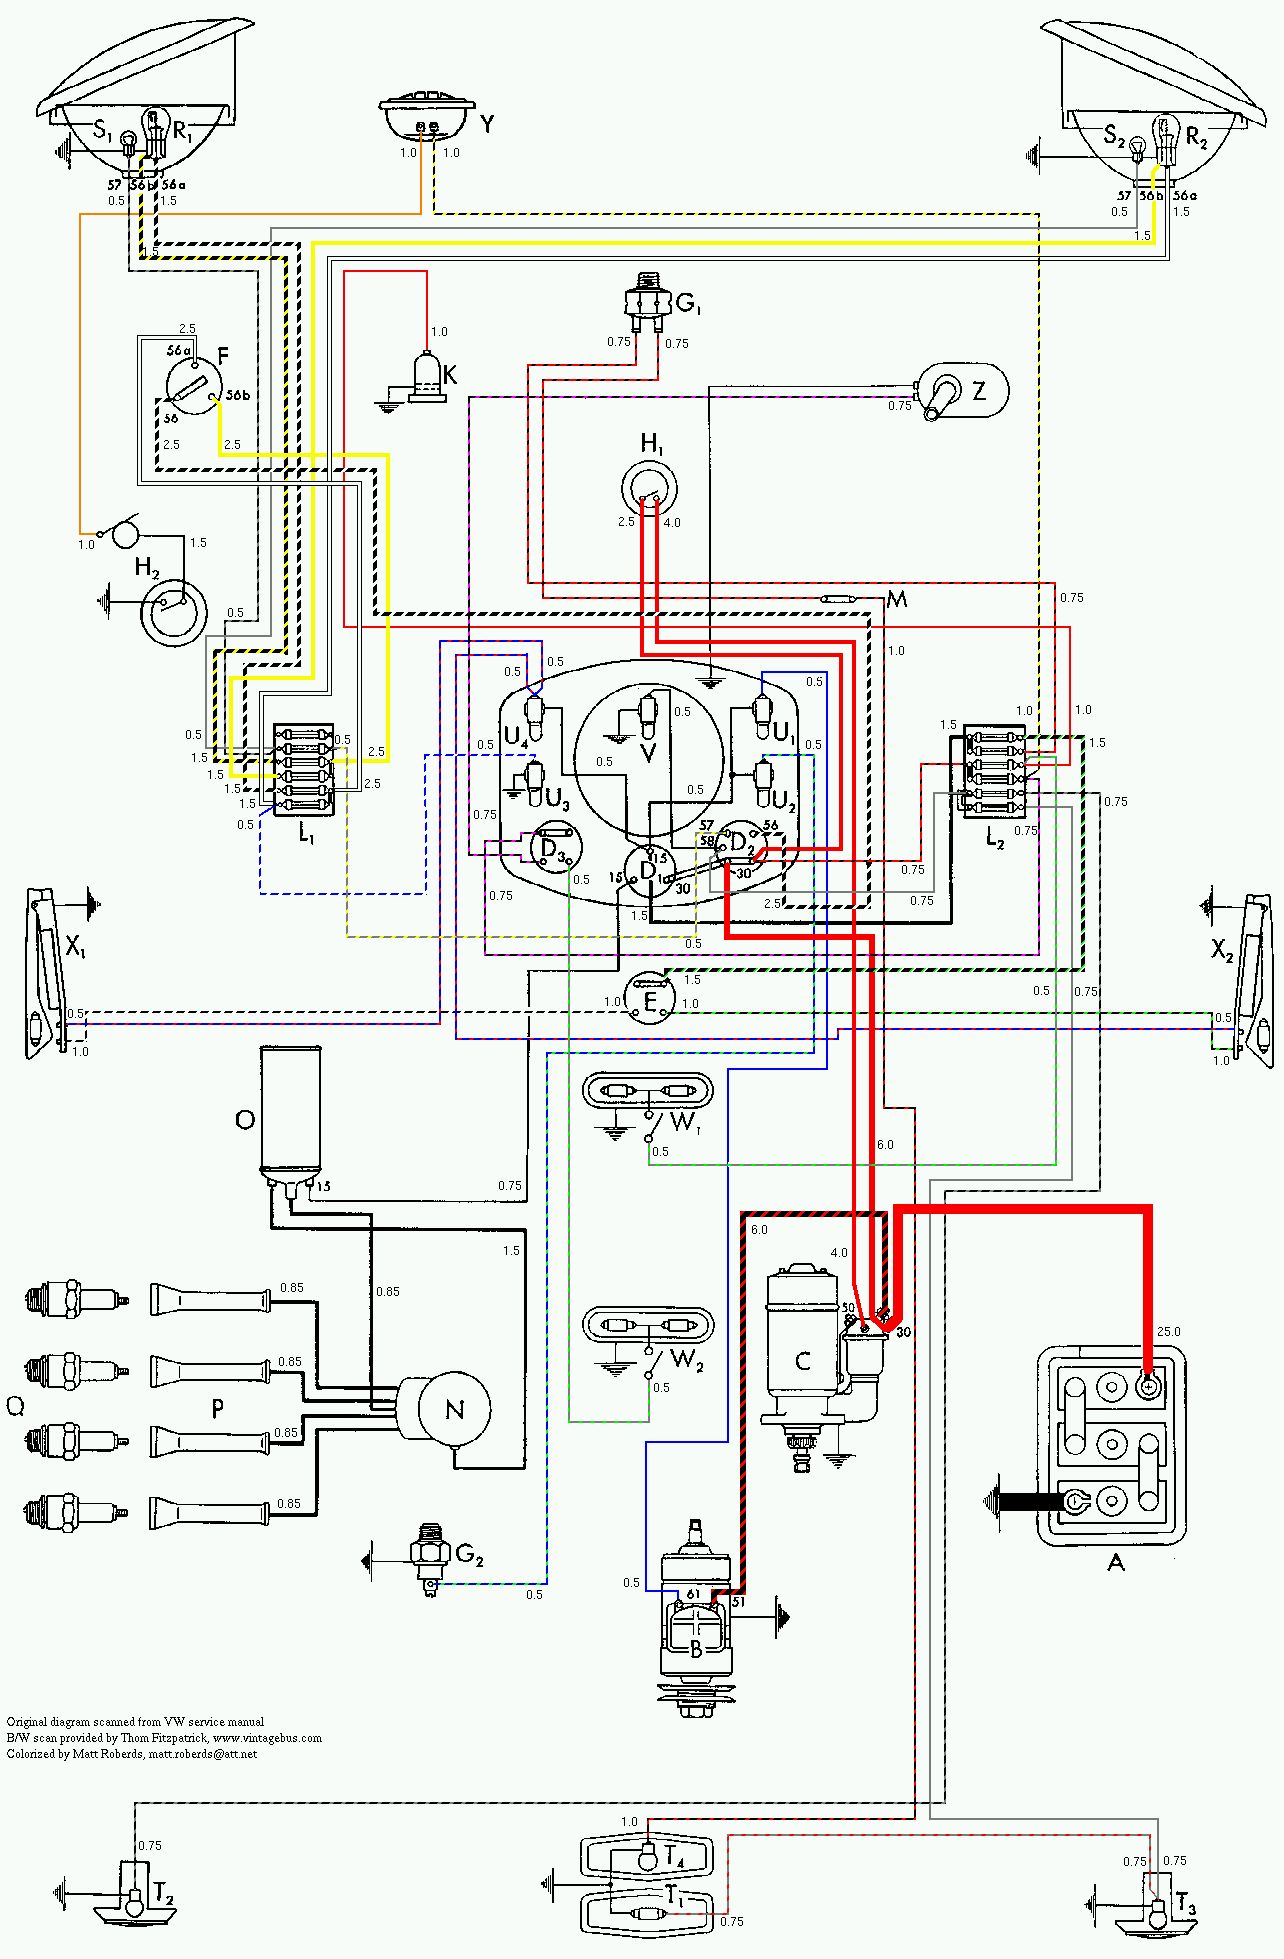 hight resolution of thomas bus wiring diagrams thomas bus chevy wiring diagram 2003 ford e250 fuse diagram 1990 ford e250 fuse box diagram